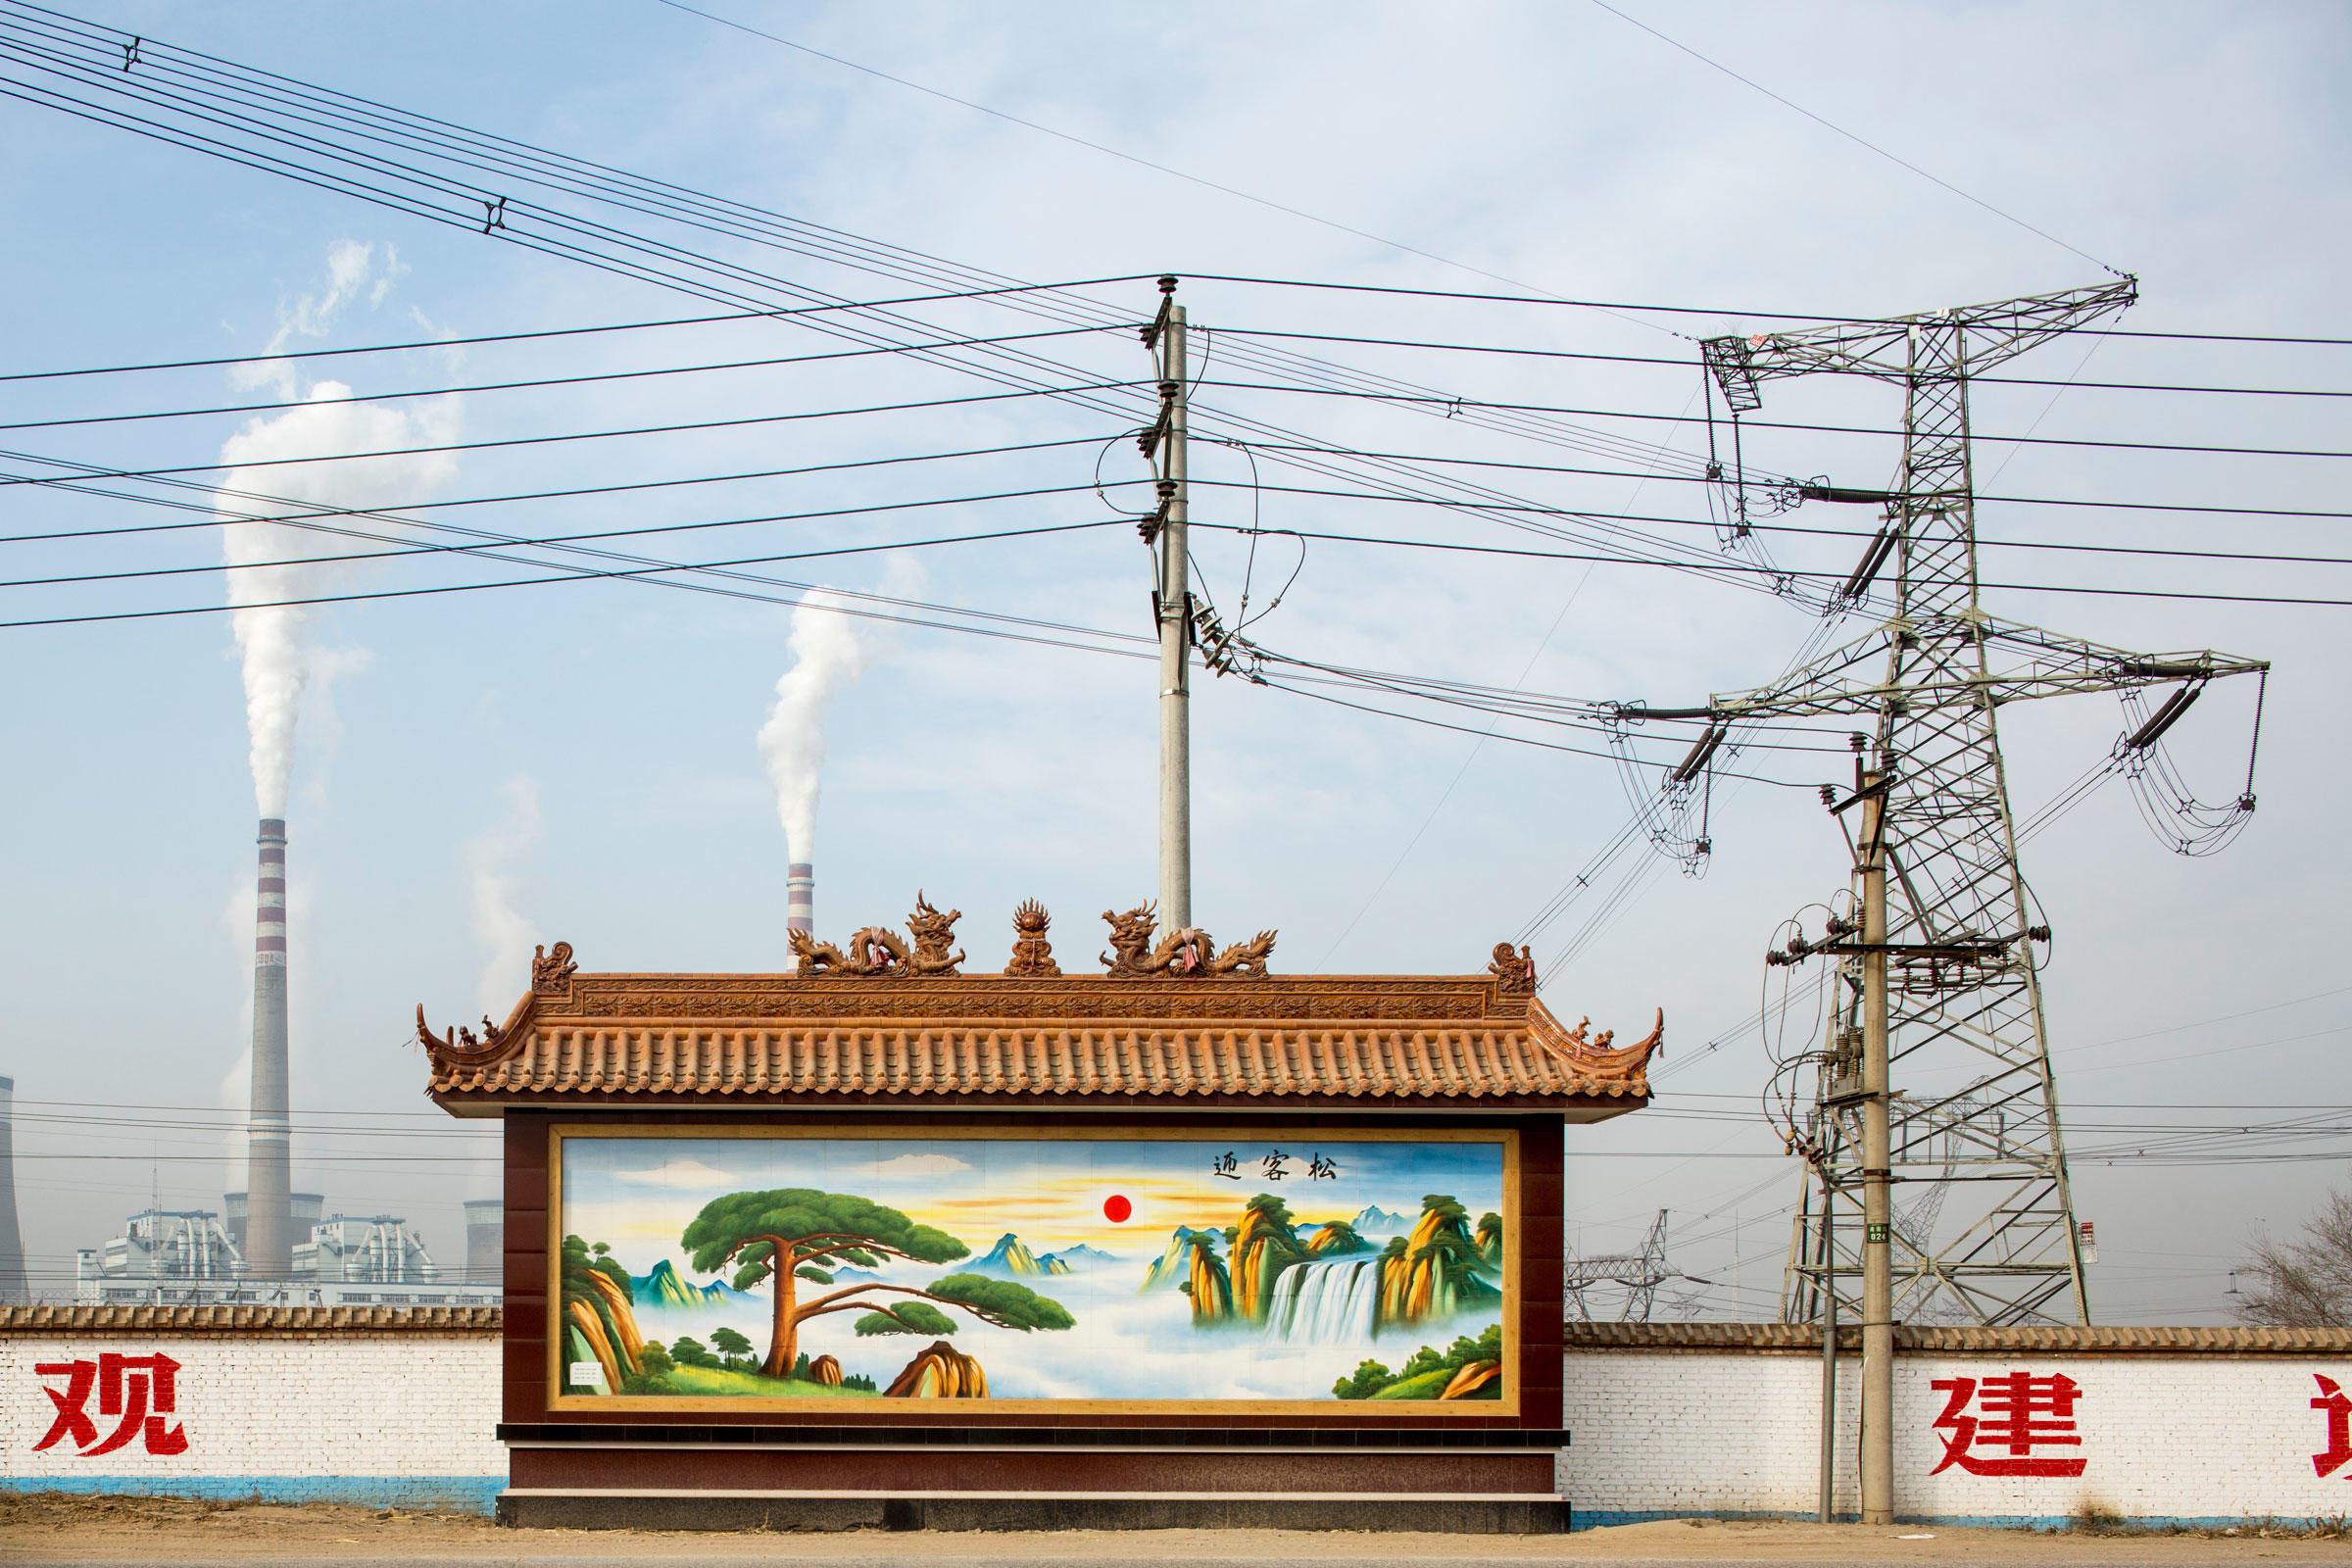 A painting of an idyllic Chinese landscape stands in front of smokestacks at Datong No. 2 Power Station in Shanxi Province, China. Paul Souders/Corbis